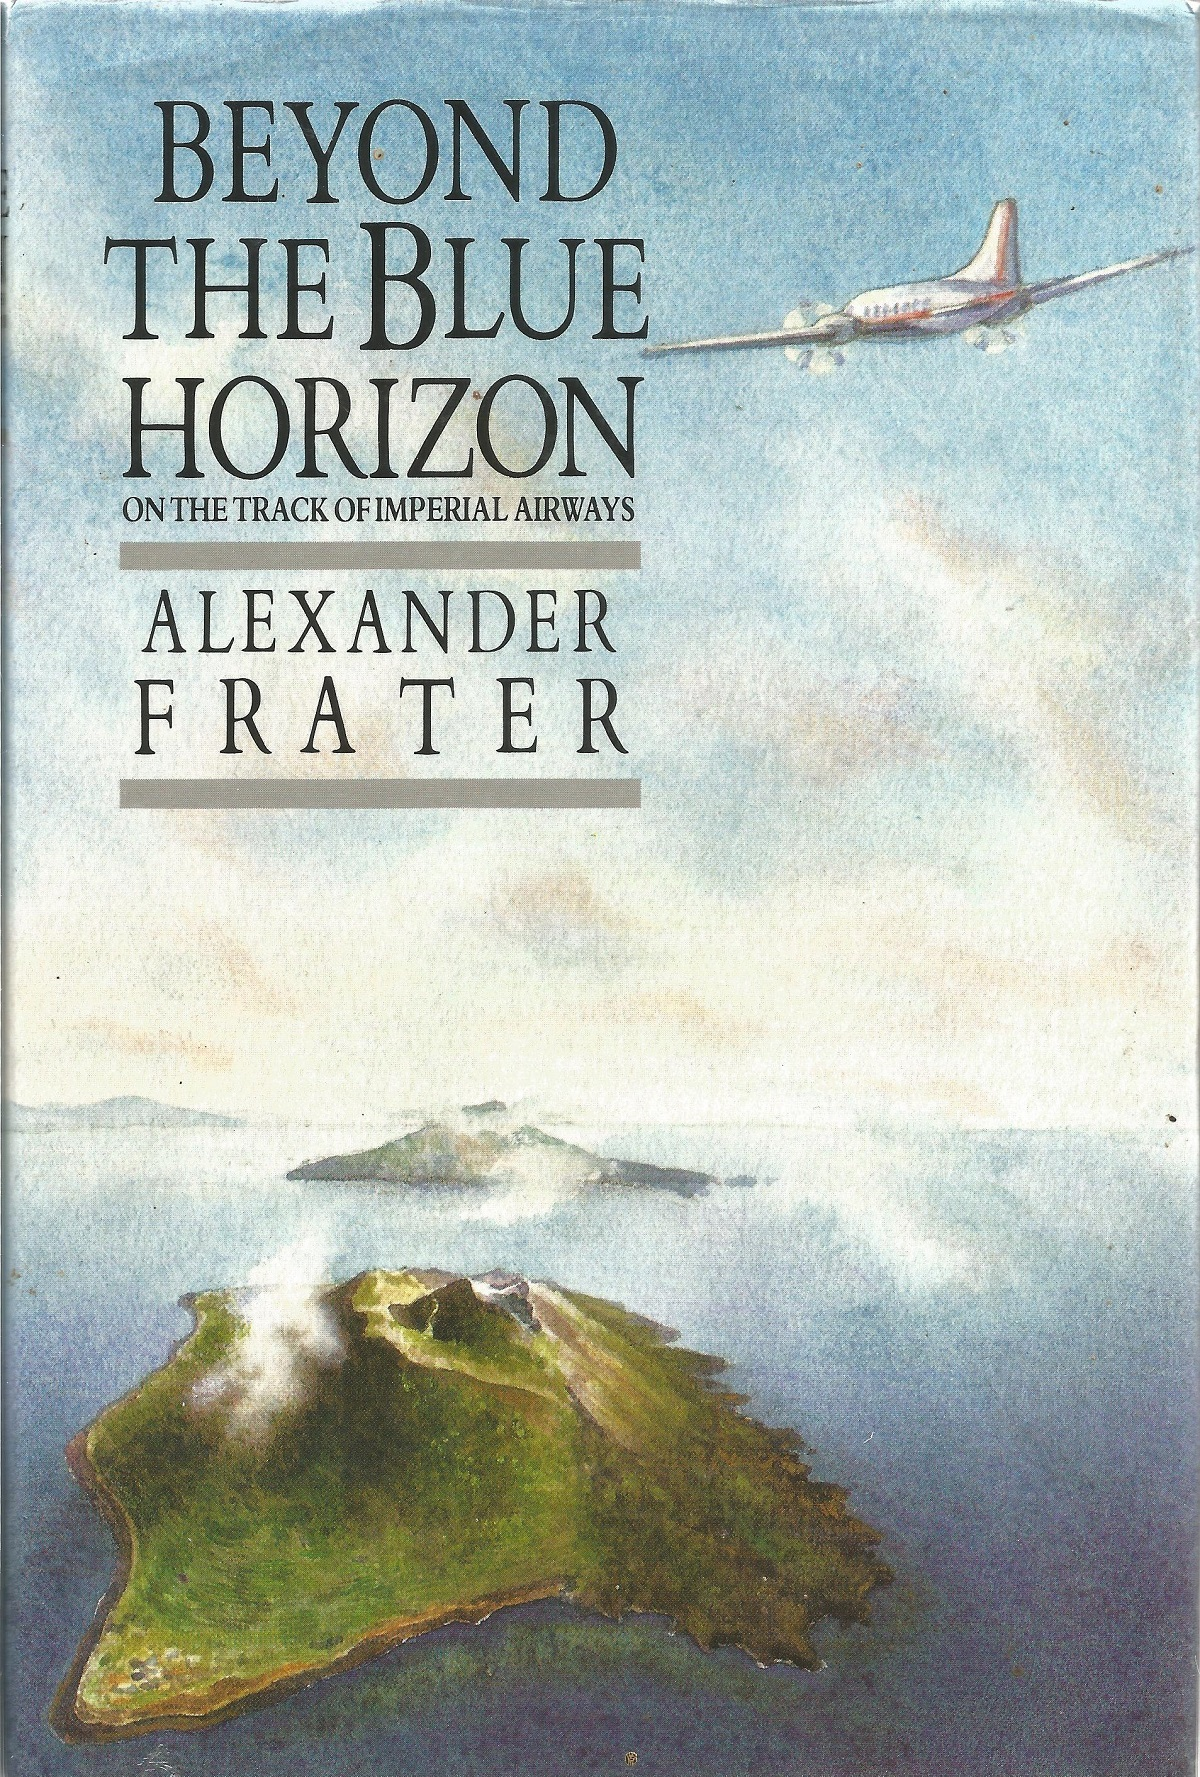 Alexander Frater. Beyond The Blue Horizon on the track of imperial railways. A WW2 First edition